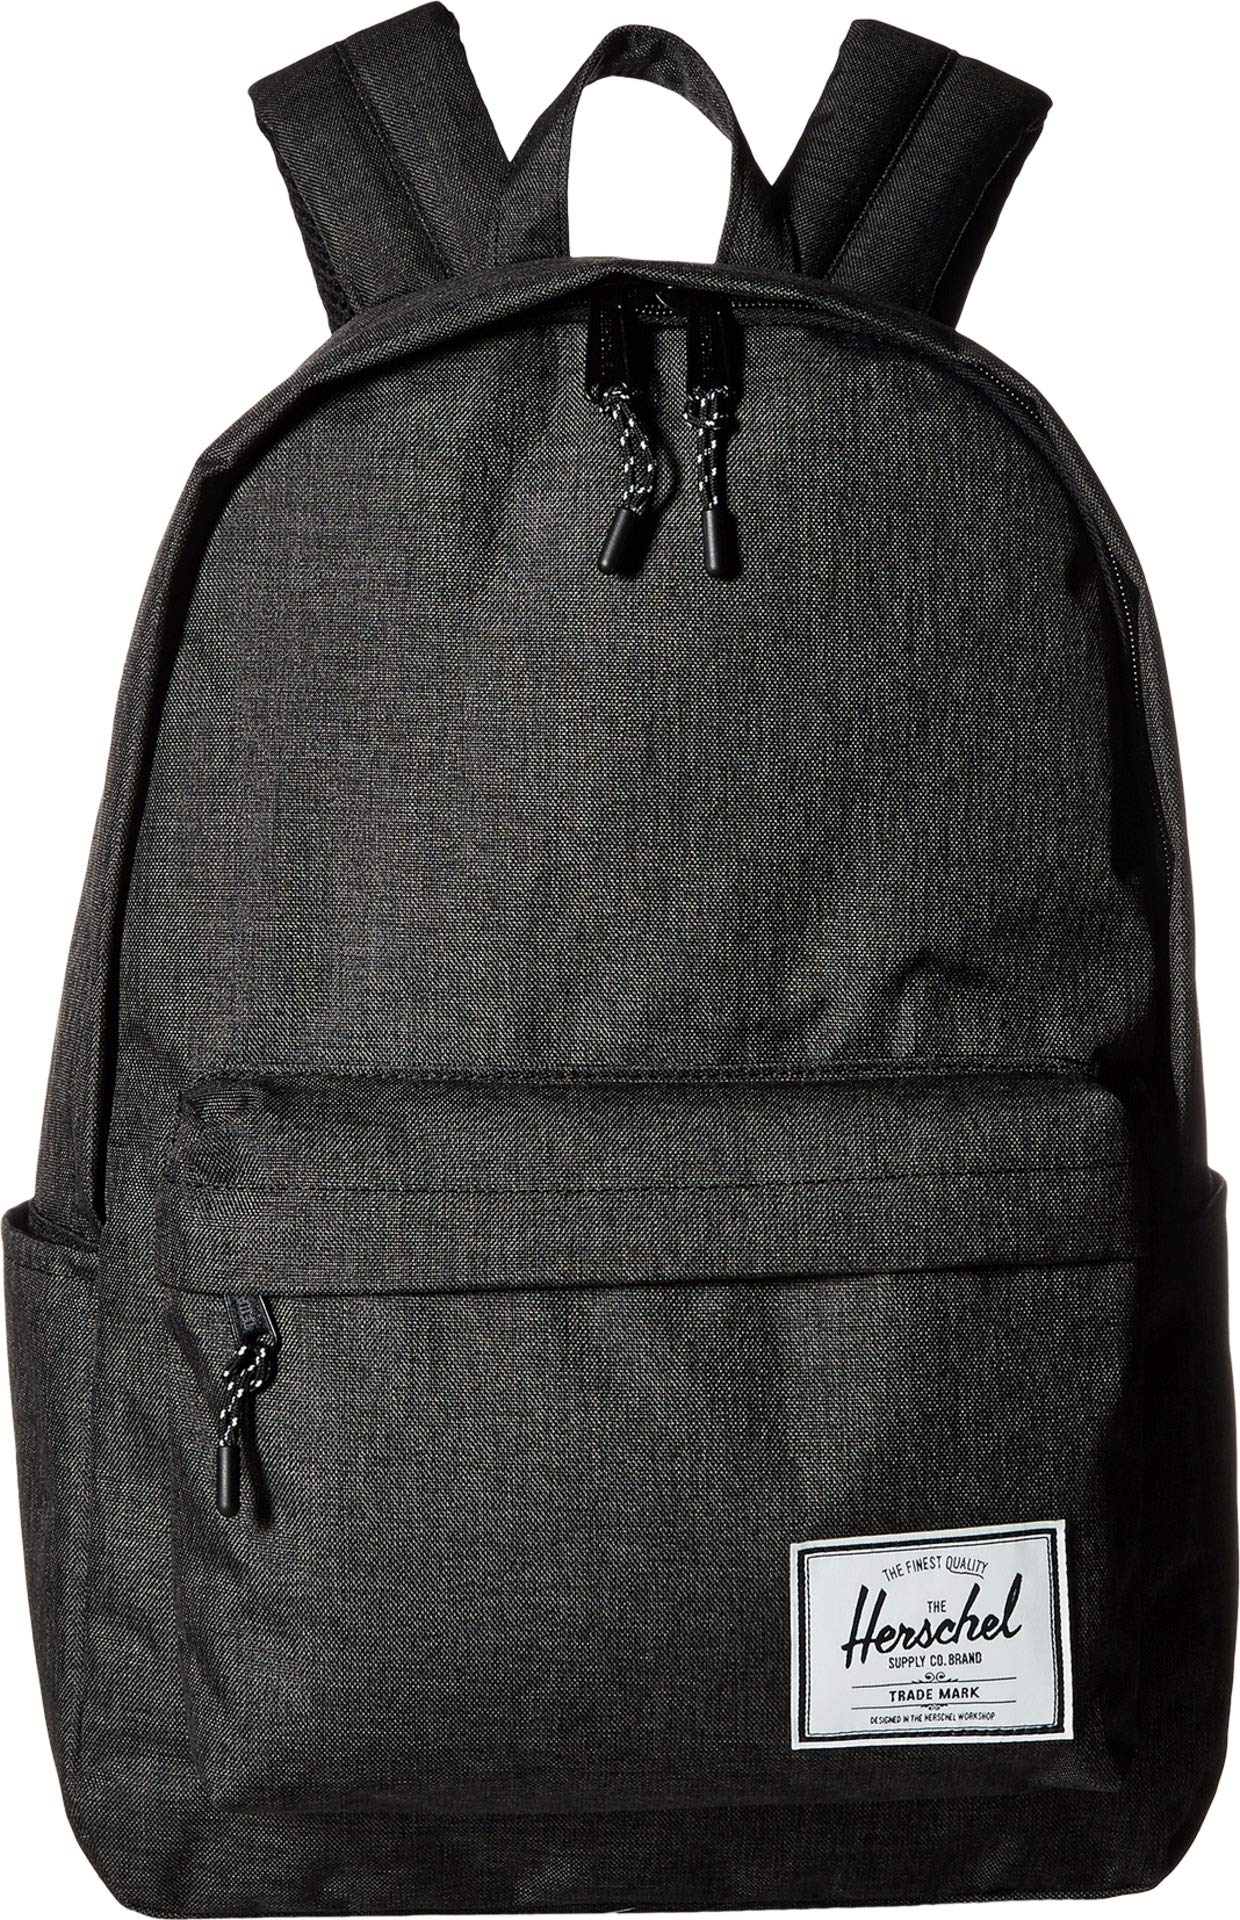 Herschel Classic X-Large Backpack, Black Crosshatch, One Size